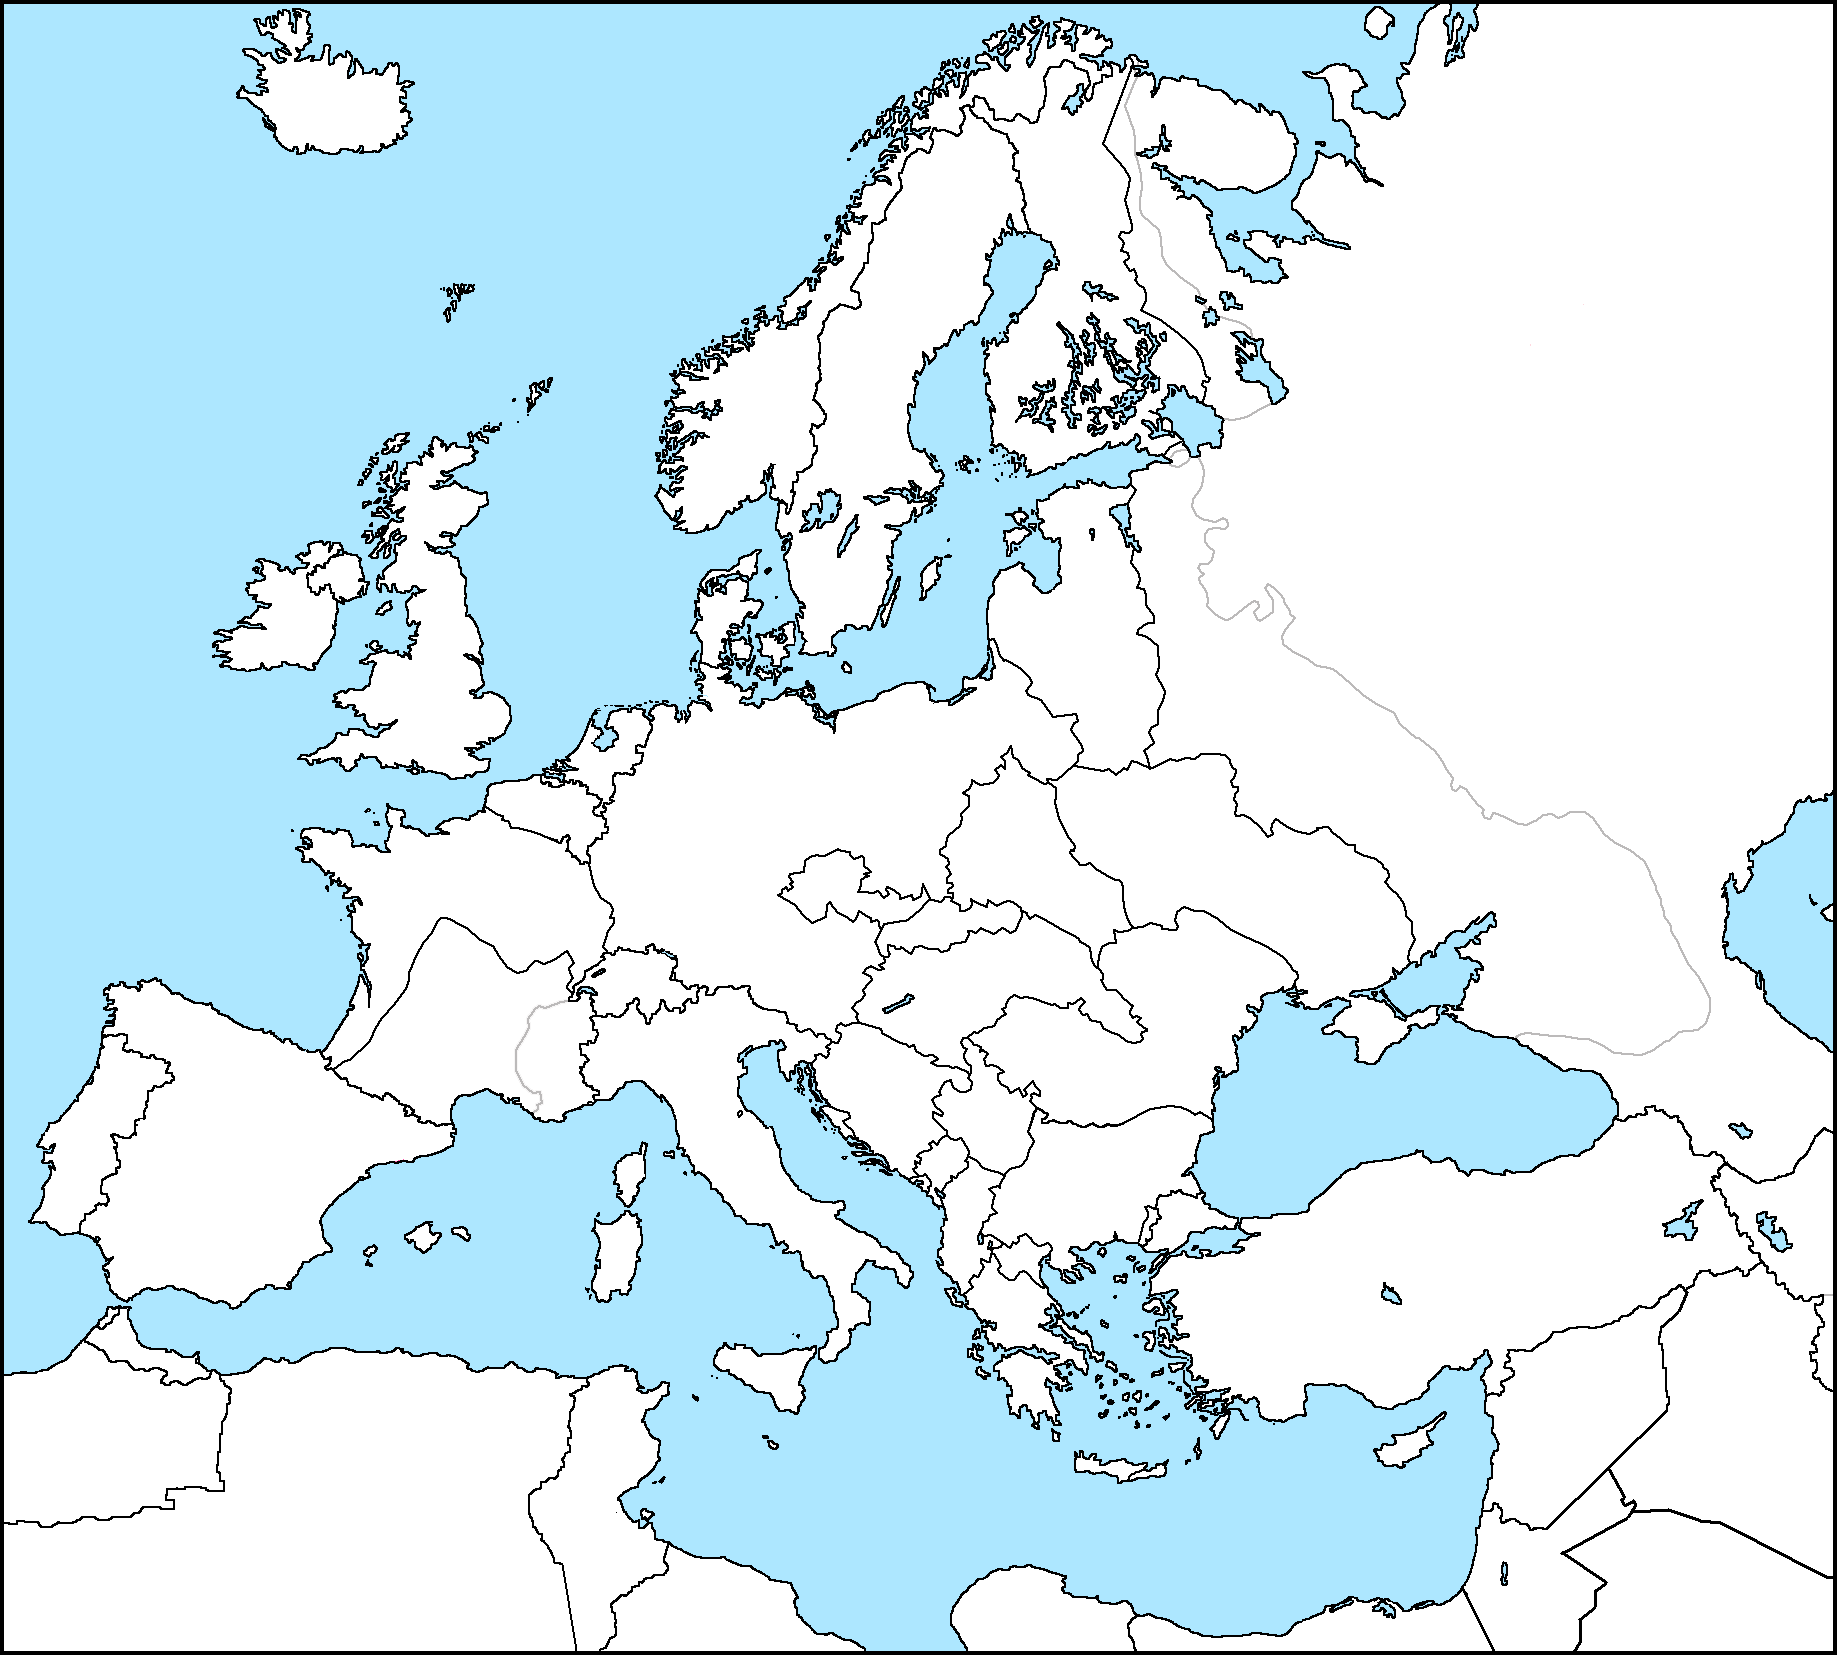 blank map of europe 1942 Mapping   Europe 1942 by HarryM29 on DeviantArt